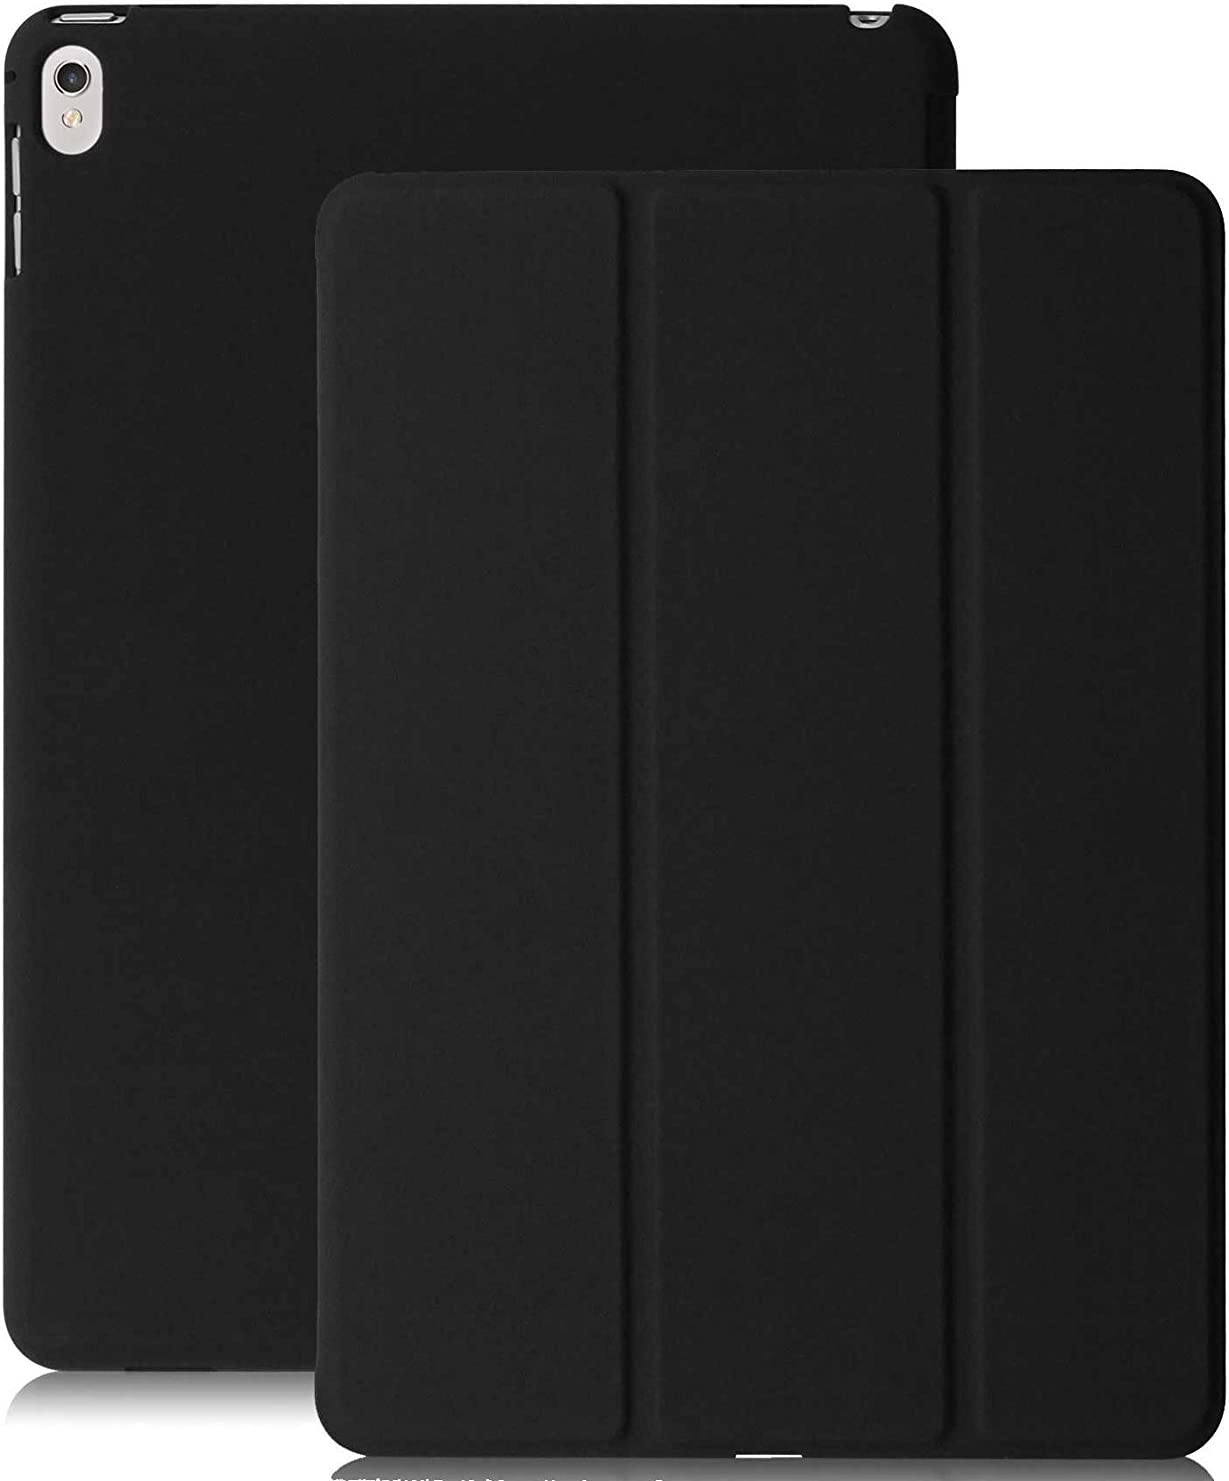 KHOMO iPad Pro 9.7 Inch Case (2016) - DUAL Black Super Slim Cover with Rubberized back and Smart Feature (Built-in magnet for sleep / wake feature) For Apple iPad Pro 9.7 Tablet